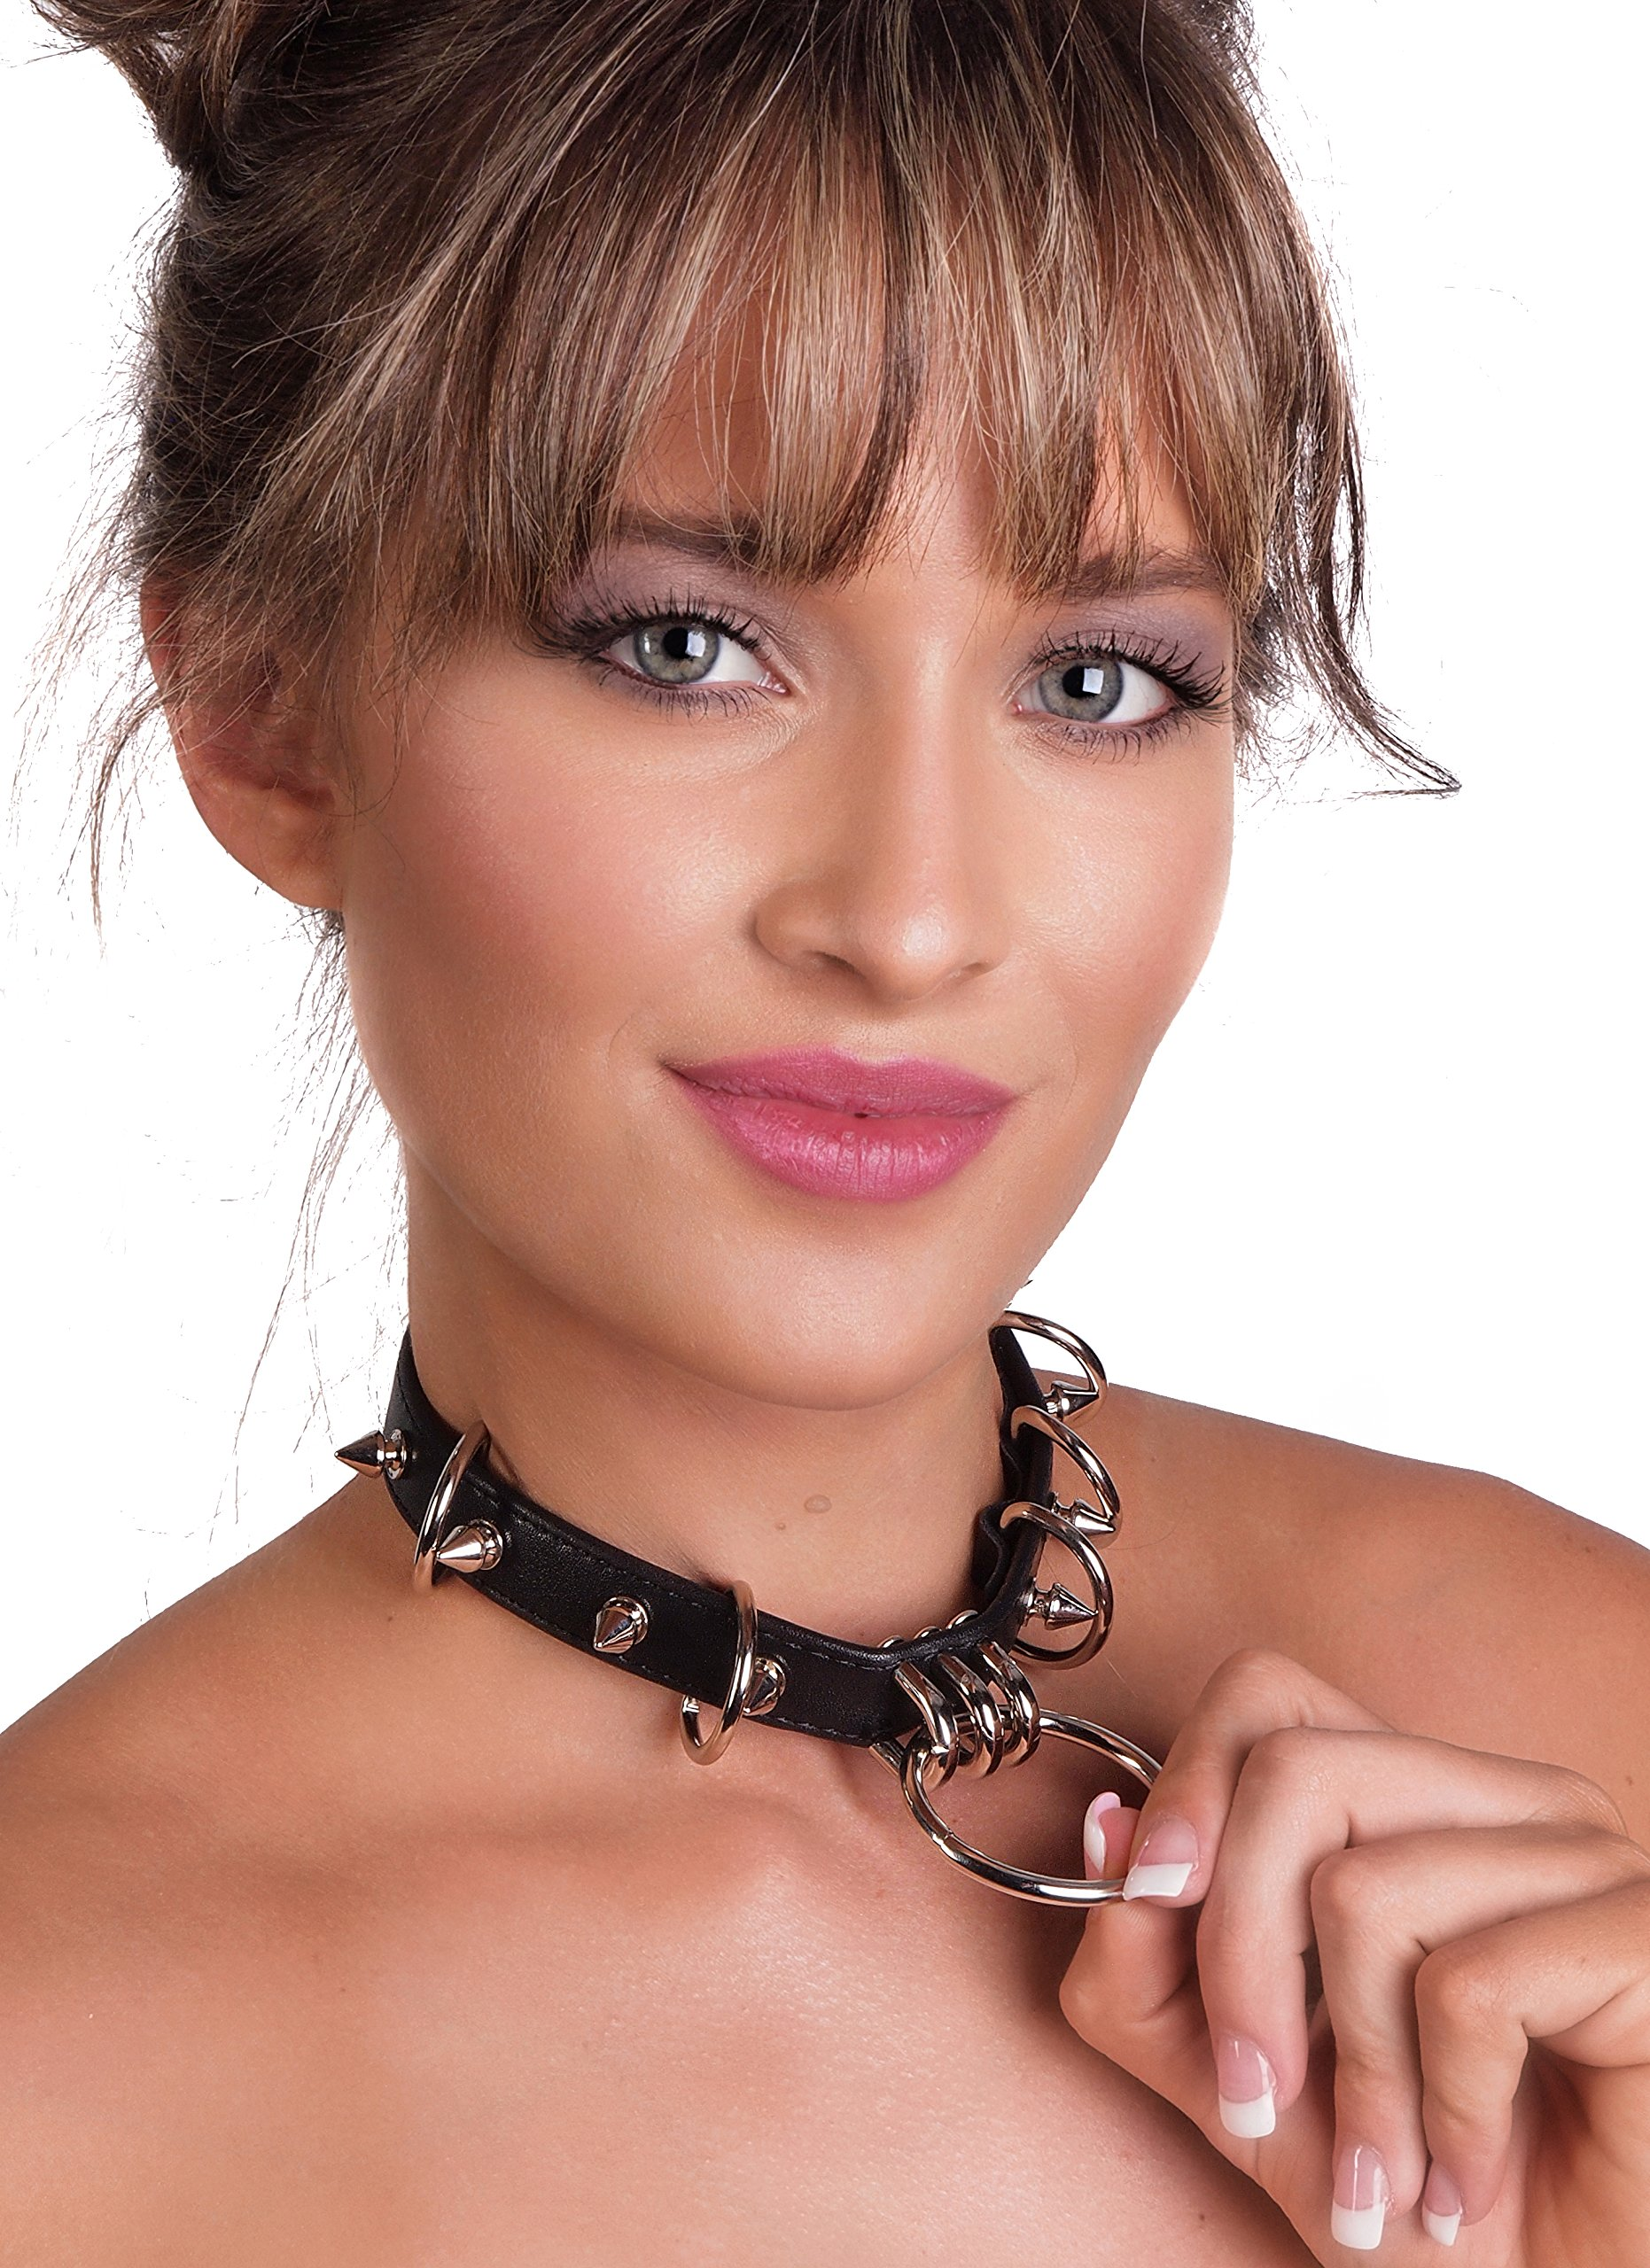 Western Fashion, inc. Spike Choker with Rings and Studs Metal PU Leather Goth